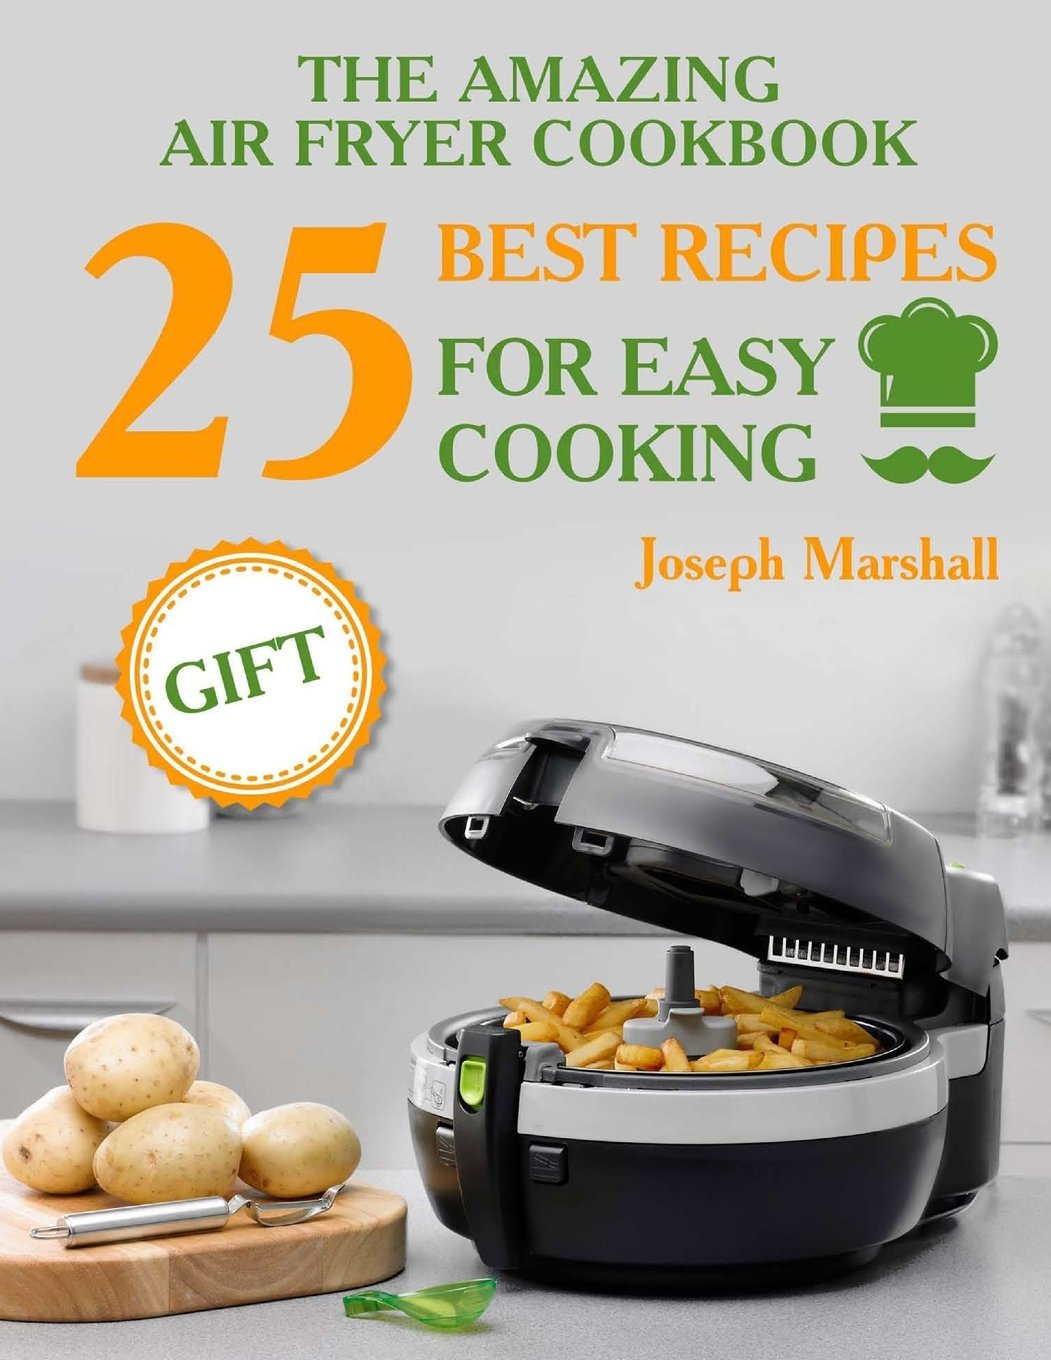 The amazing air fryer cookbook. 25 best recipes for easy cooking